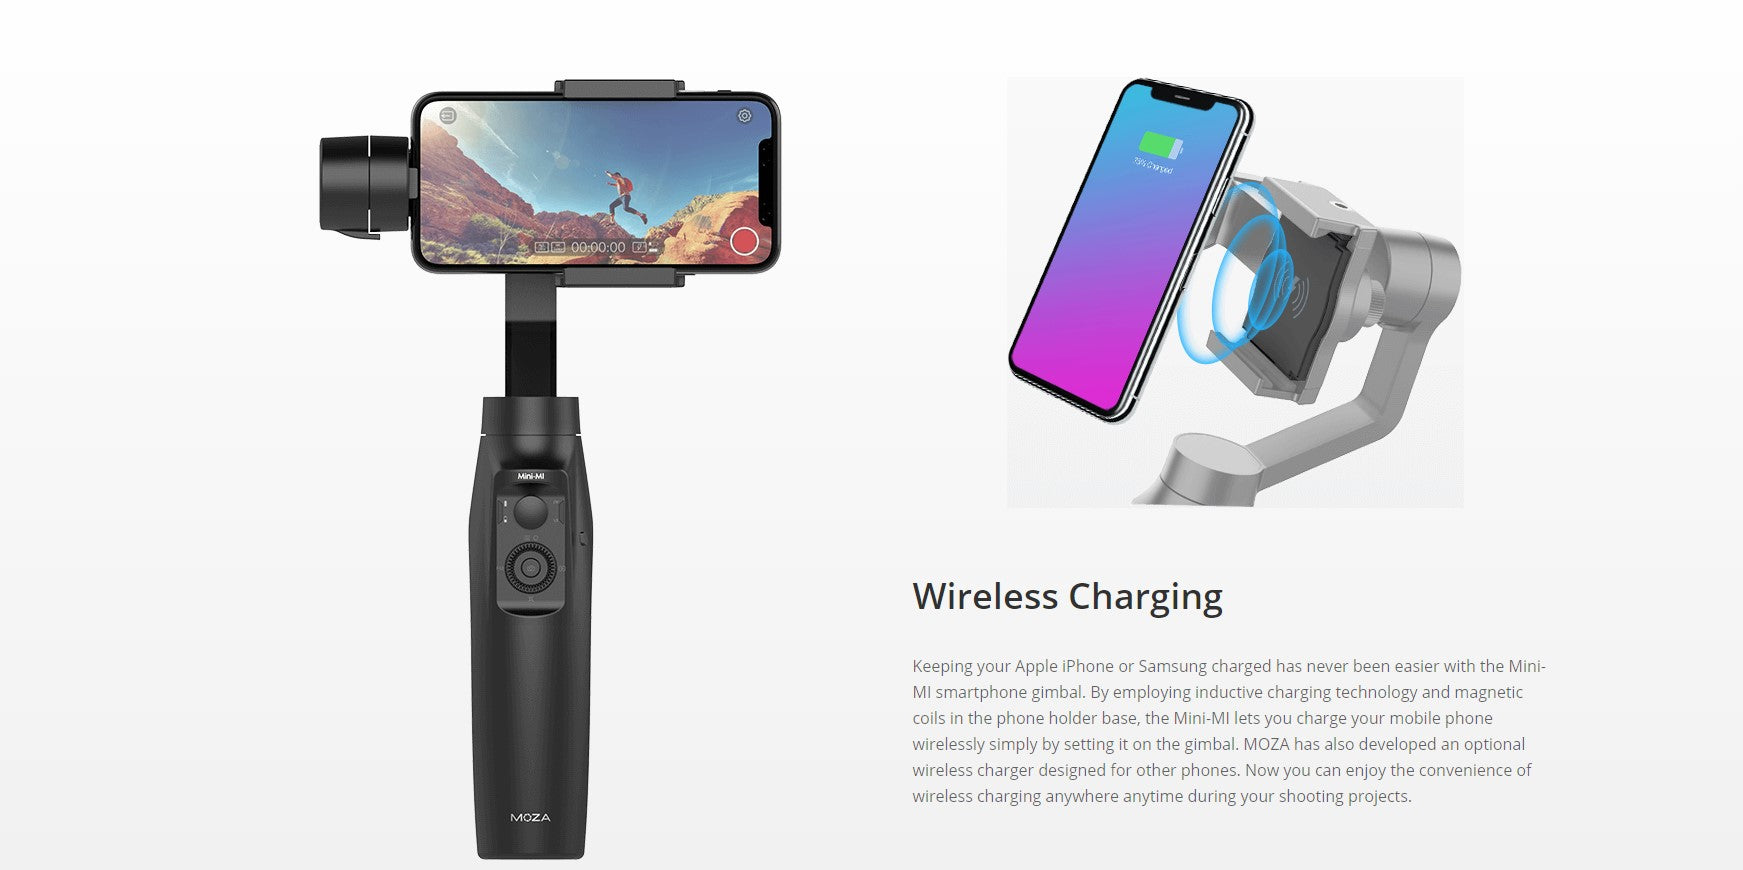 Wireless ChargingKeeping your Apple iPhone or Samsung charged has never been easier with the Mini-MI smartphone gimbal. By employing inductive charging technology and magnetic coils in the phone holder base, the Mini-MI lets you charge your mobile phone wirelessly simply by setting it on the gimbal. MOZA has also developed an optional wireless charger designed for other phones. Now you can enjoy the convenience of wireless charging anywhere anytime during your shooting projects-wireless